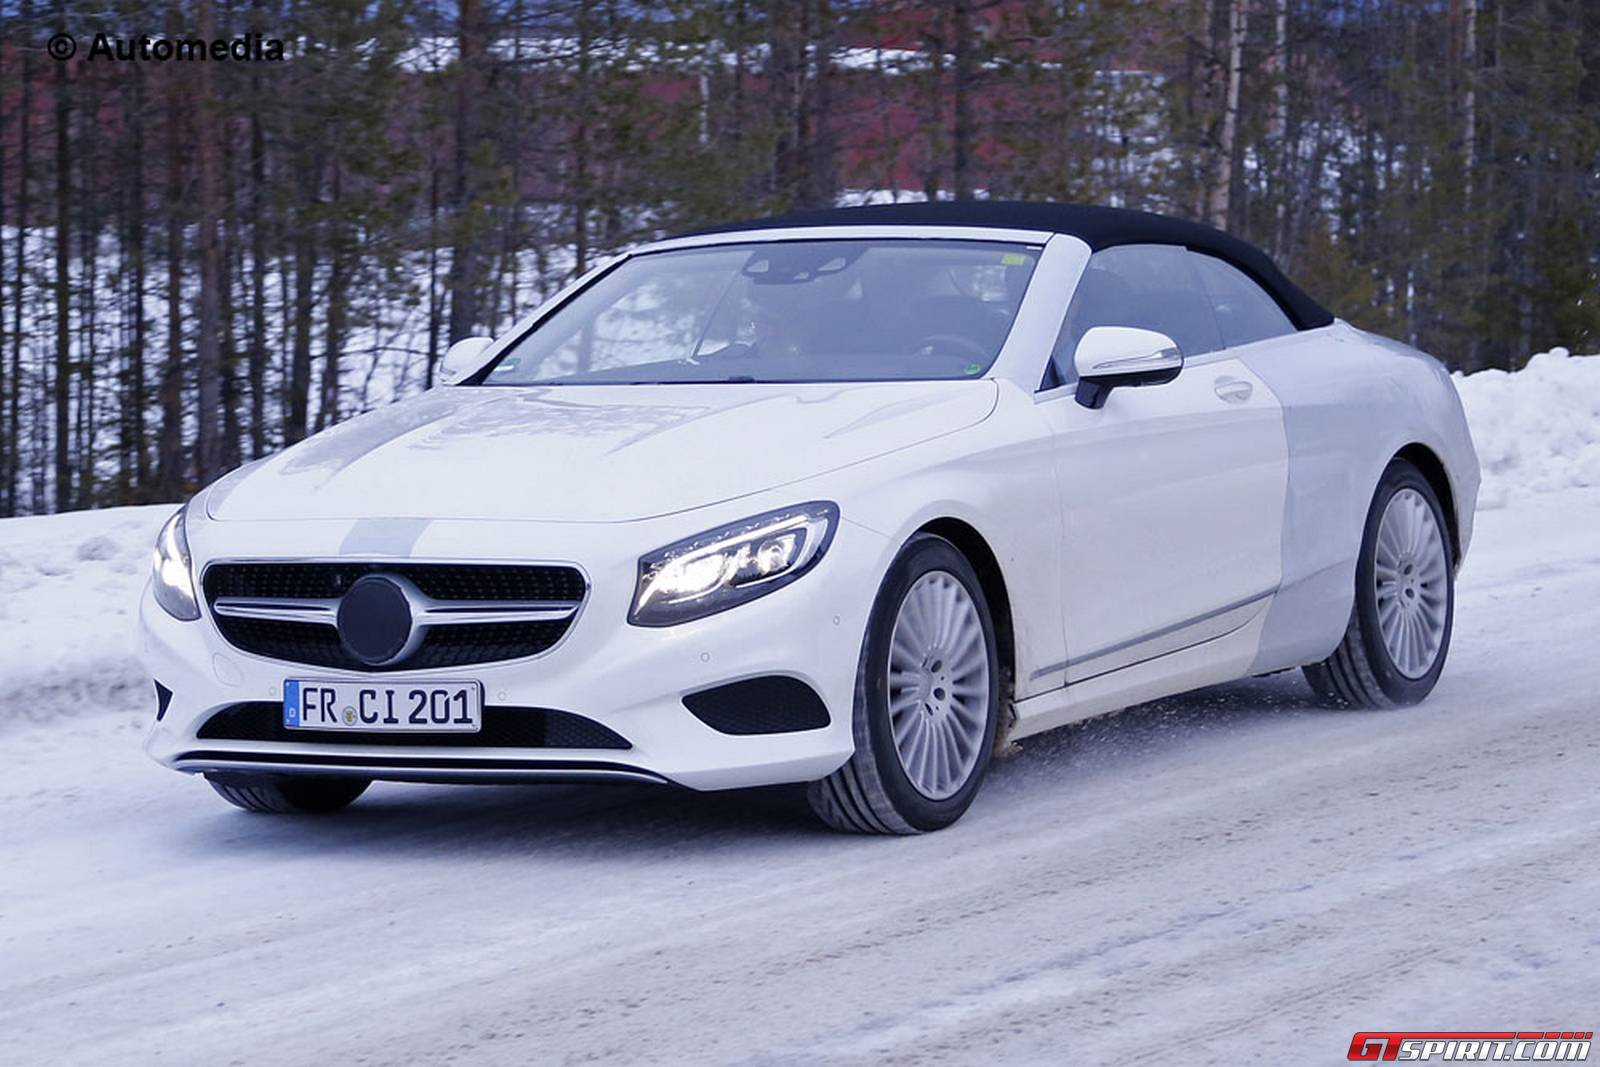 Mercedes Benz S Class Cabriolet Revealed In New Spy Shots